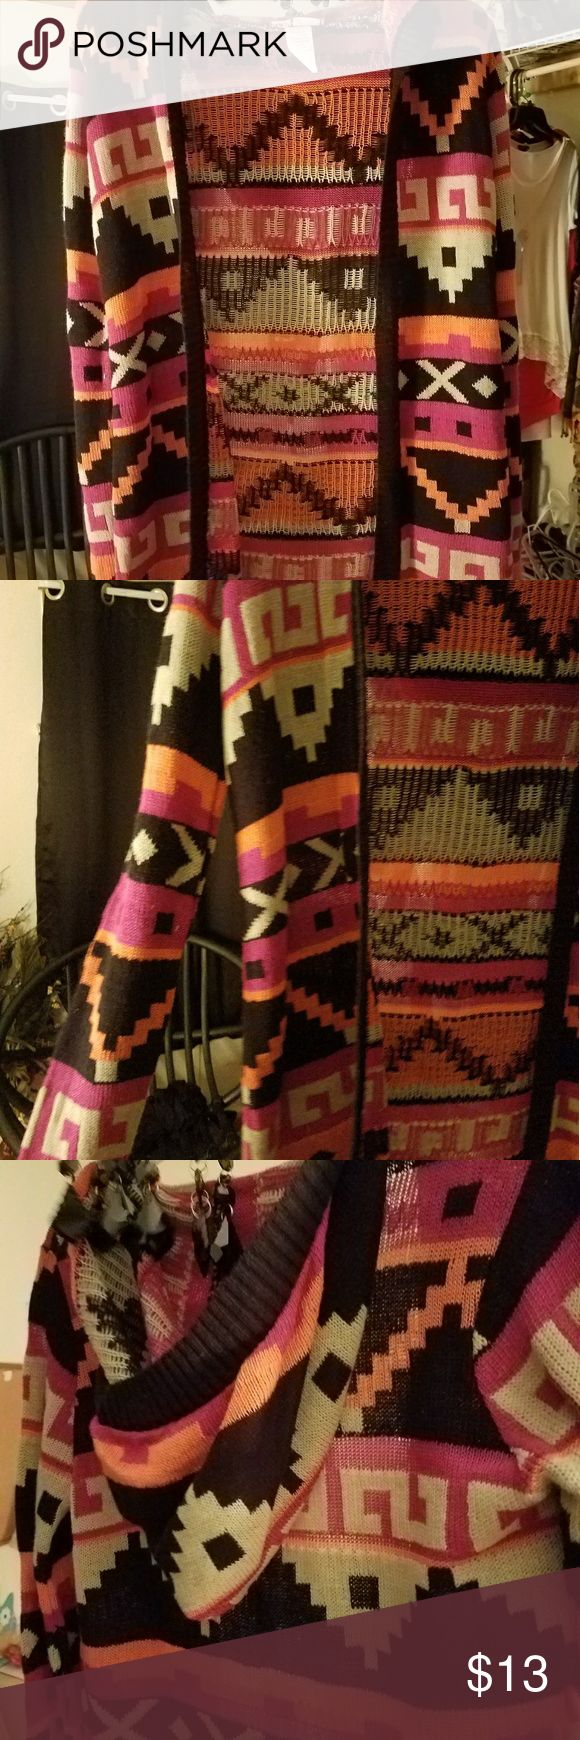 Hooded sweater cover up Tribal print hooded sweater cover up. Size m Never worn without tags too small Tops